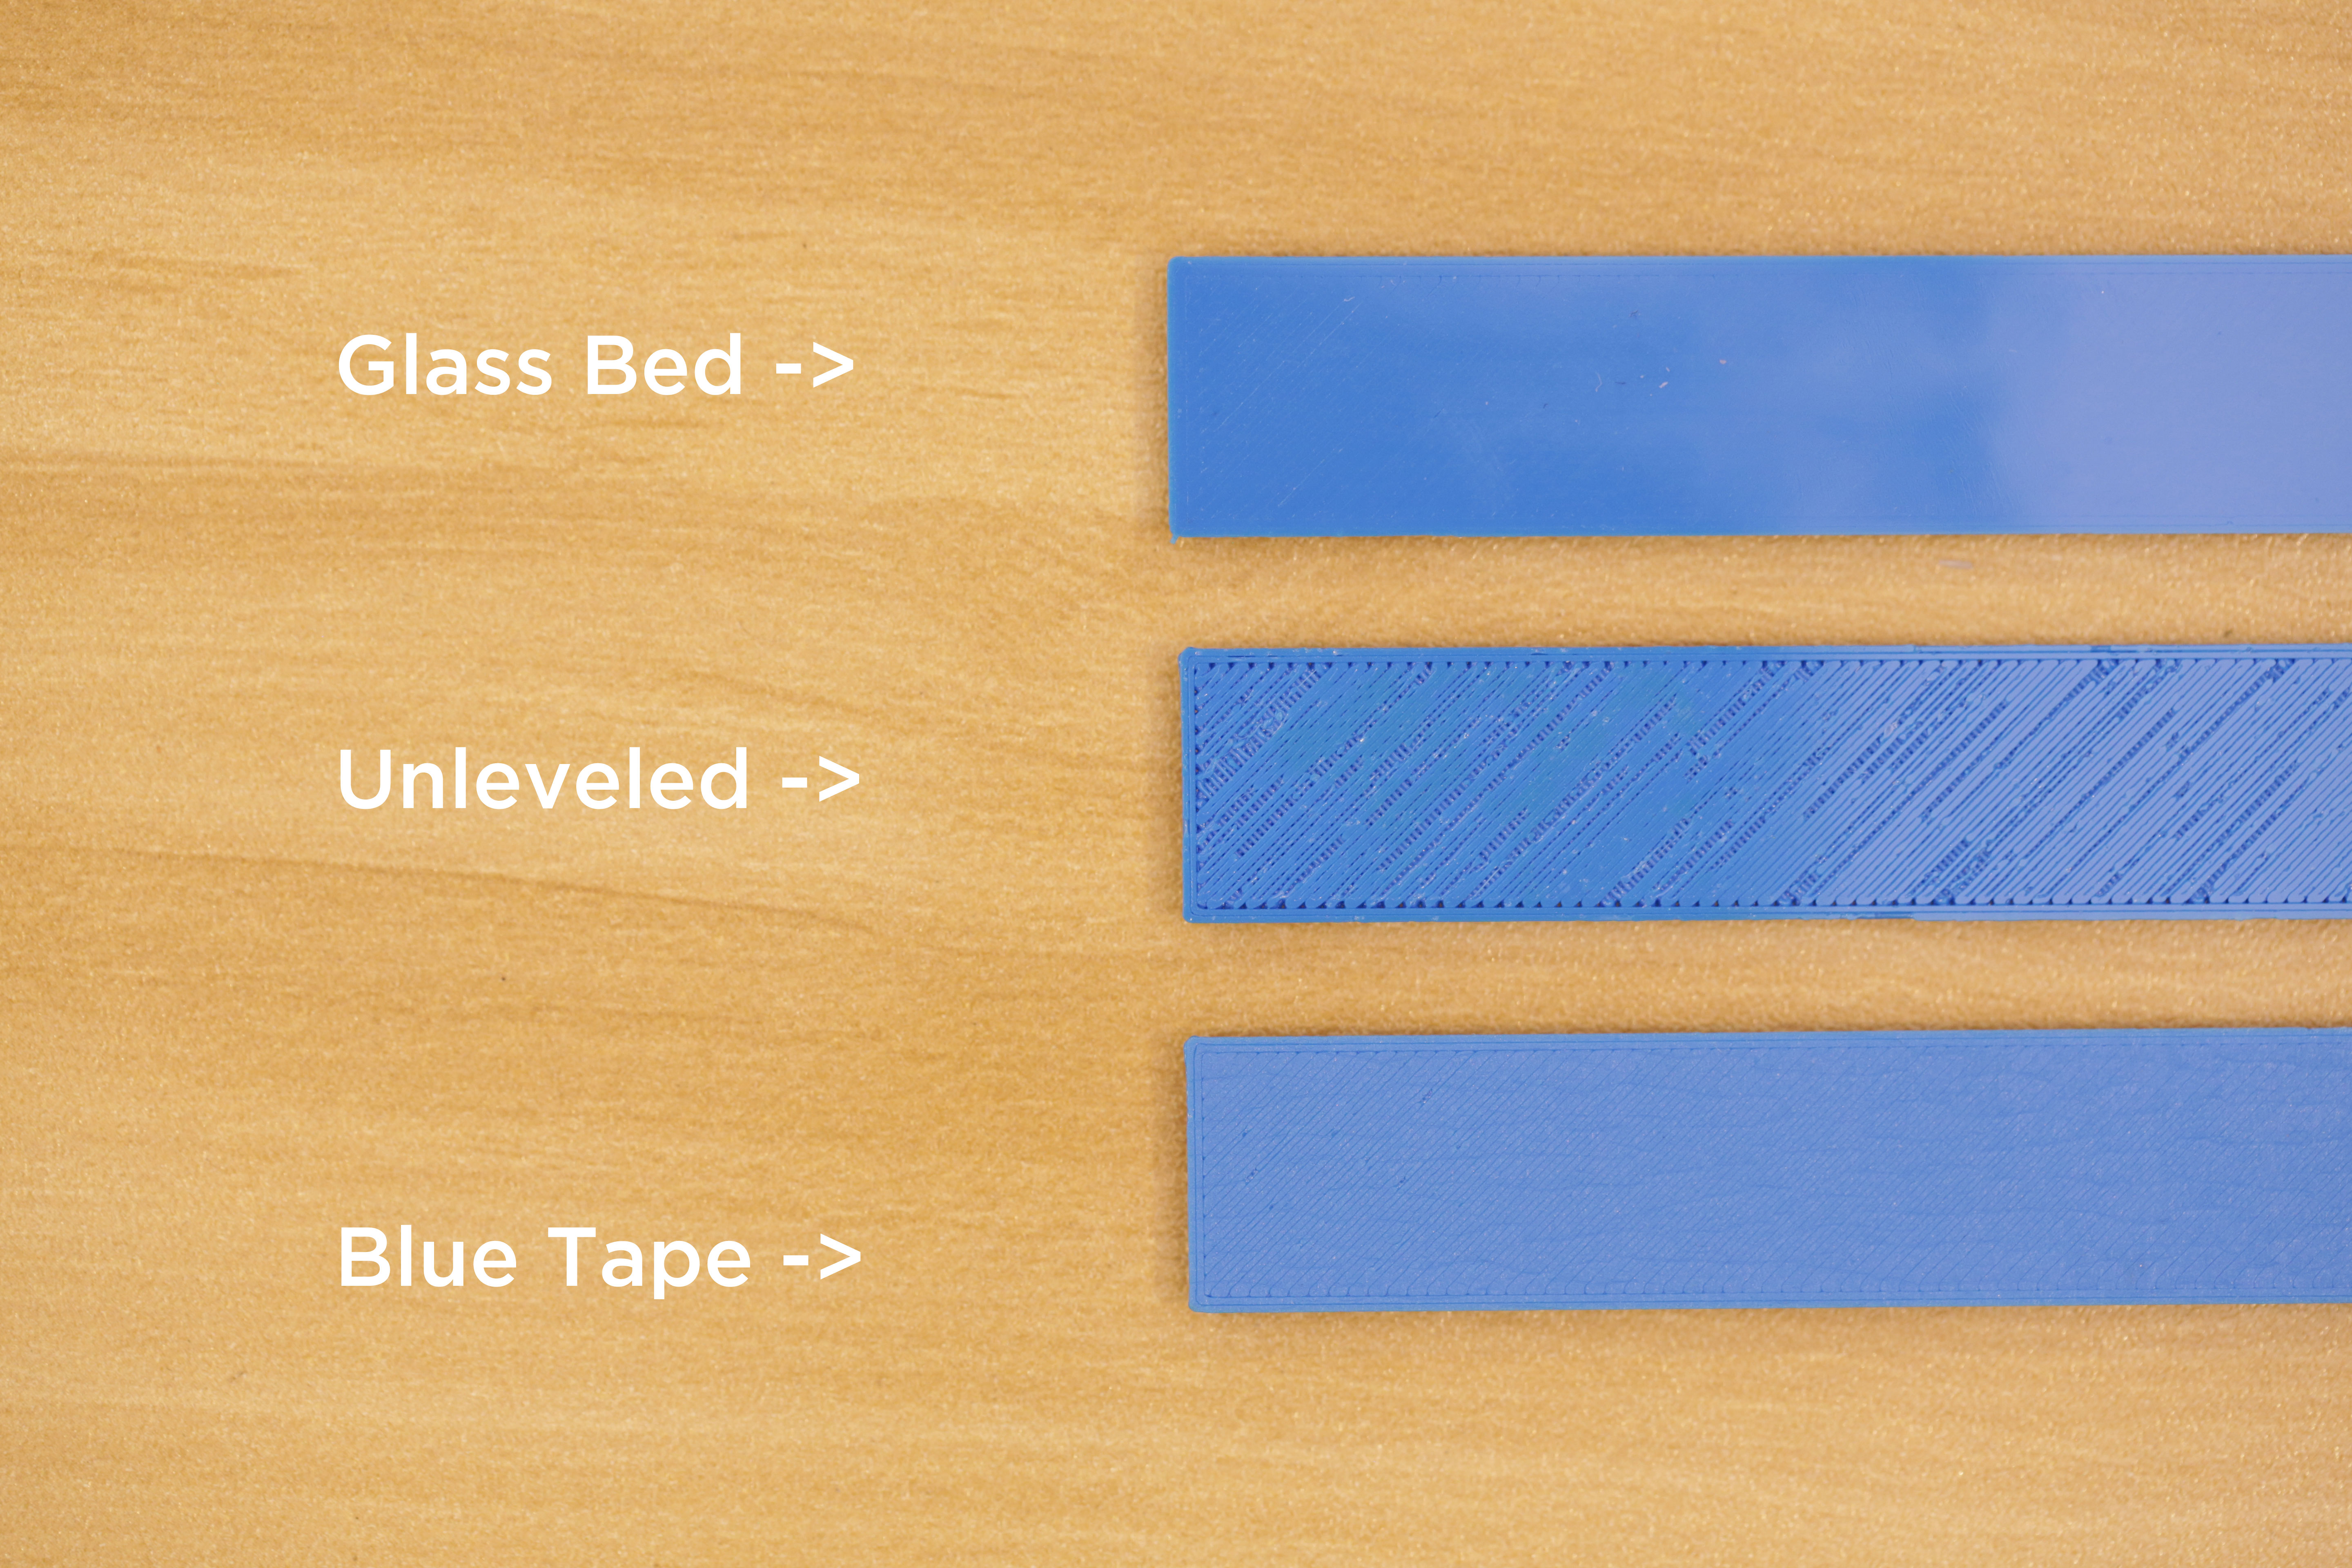 3d_printing_surface-compare-detail-txt.jpg